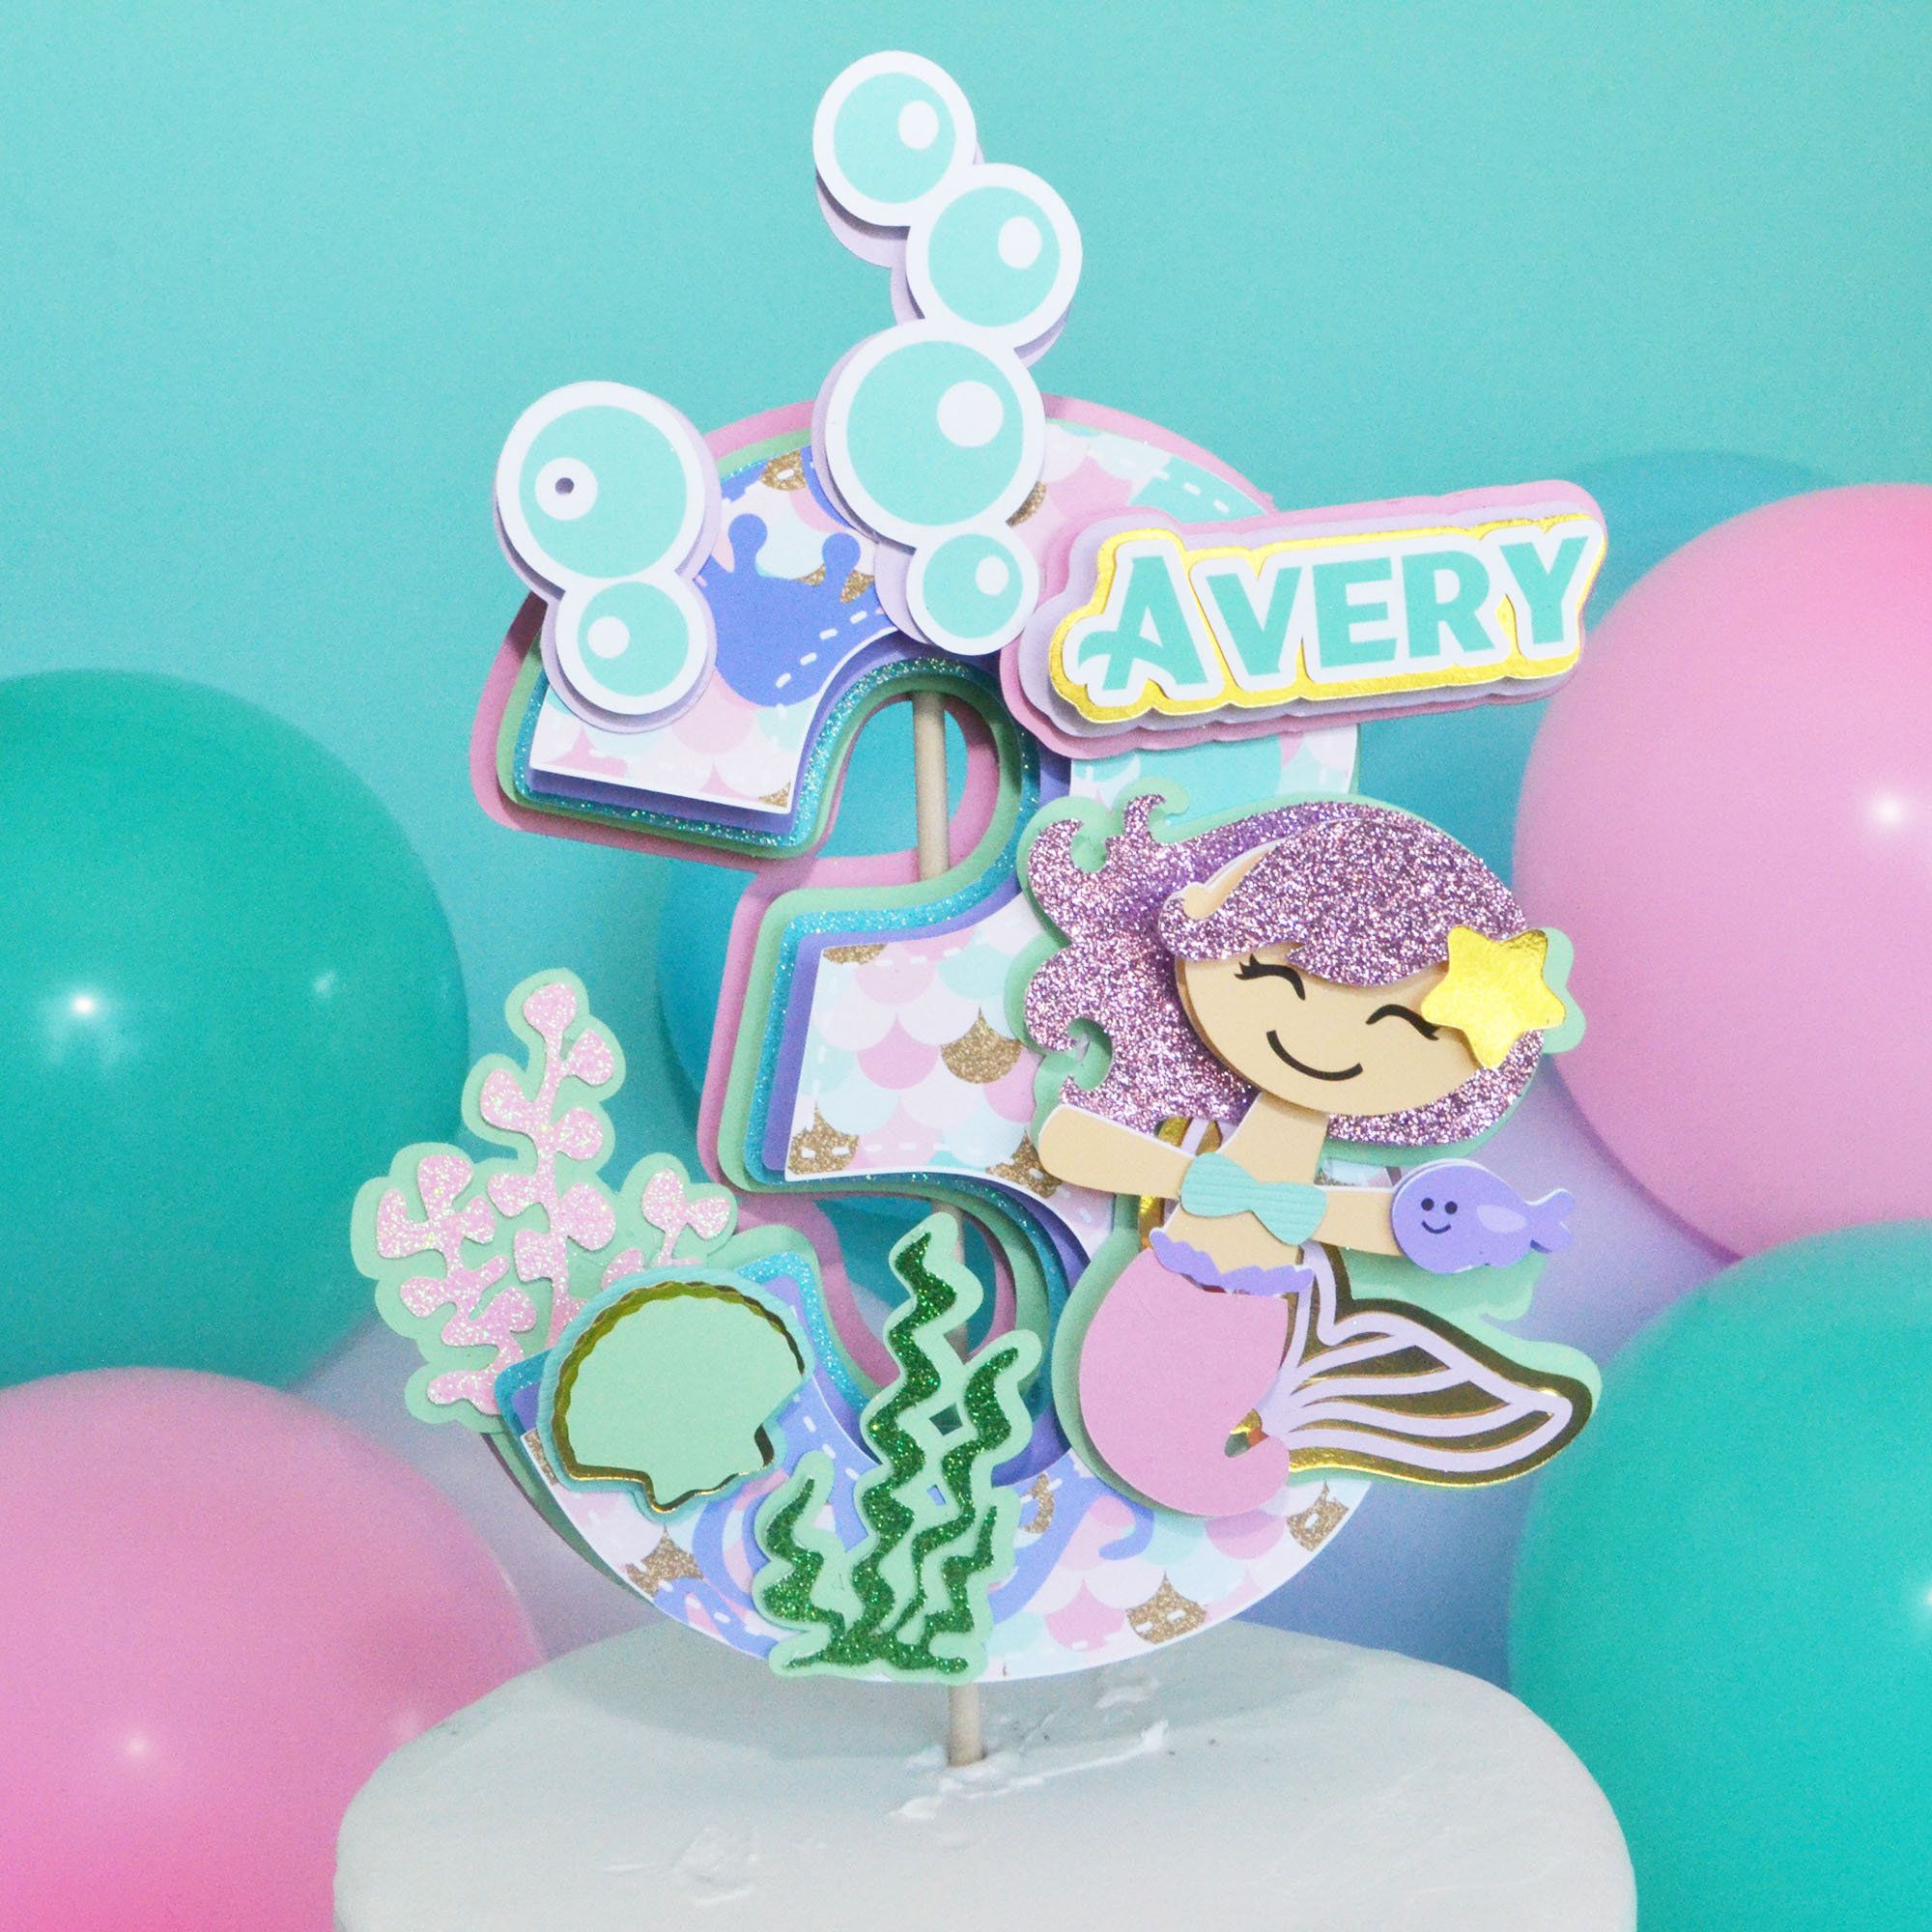 Mermaid Cake Topper Under The Sea Cake Topper Mermaid 3rd Birthday 100 Original Cake Topper Festa Da Sereia Topper De Bolo Bolo